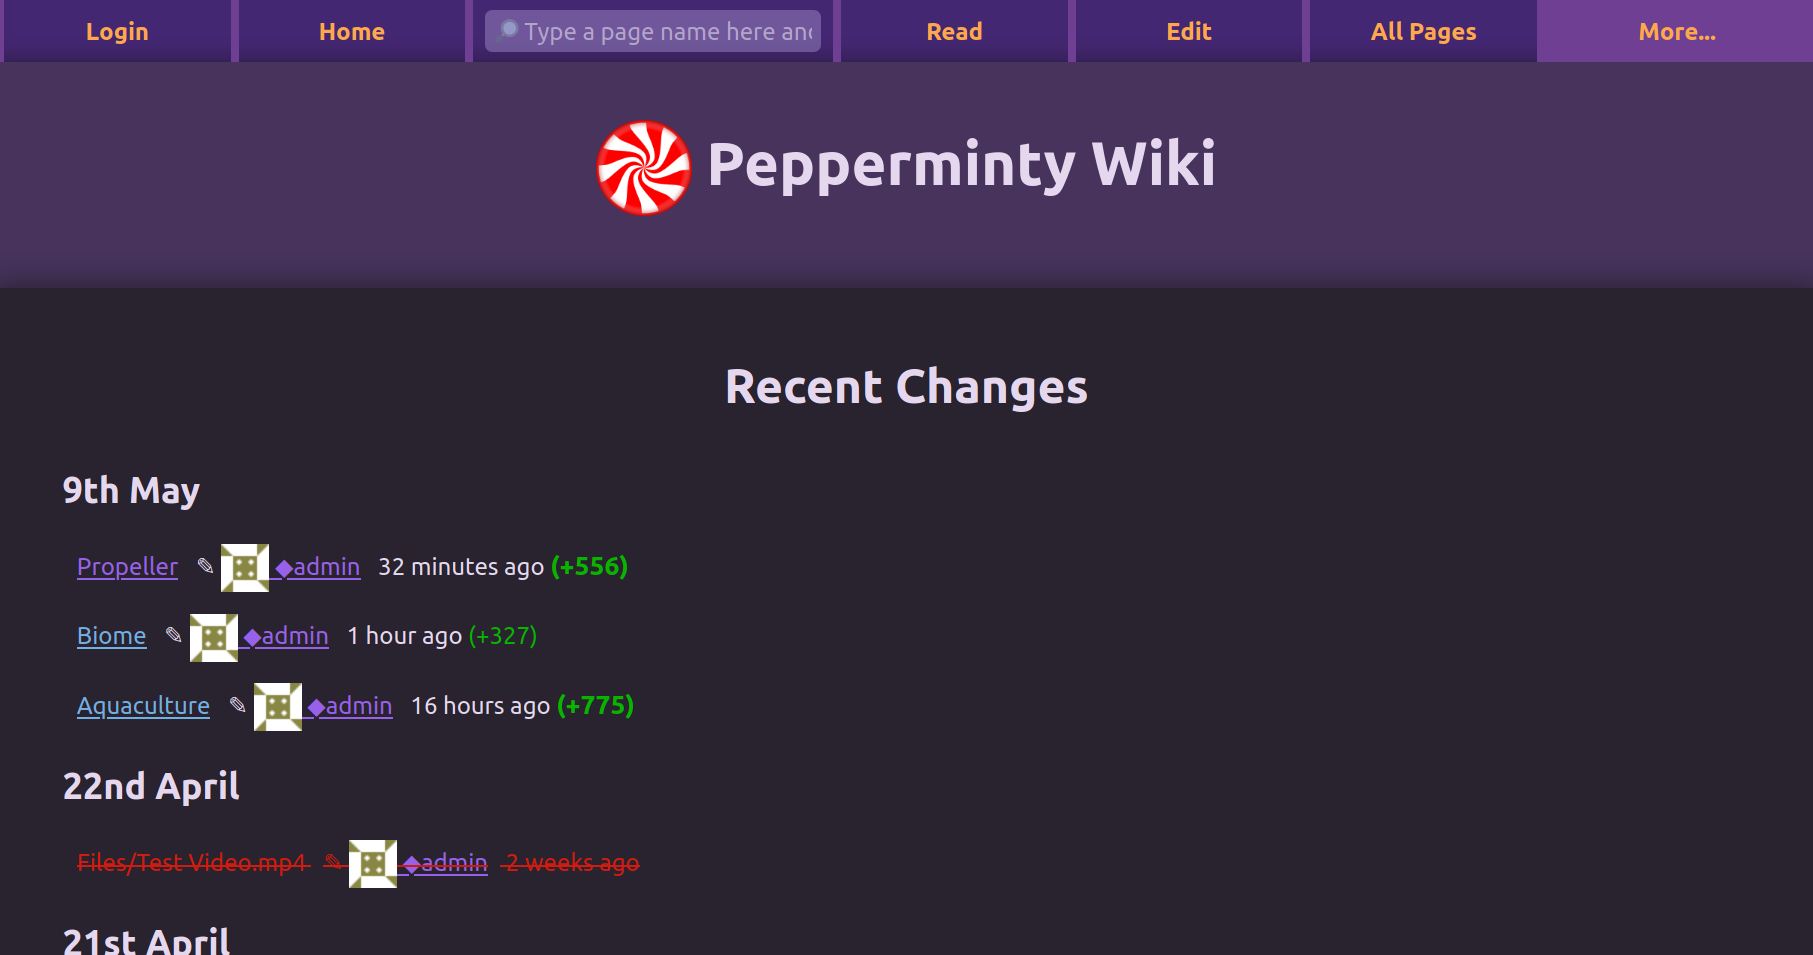 Screenshot showing the recent changes page